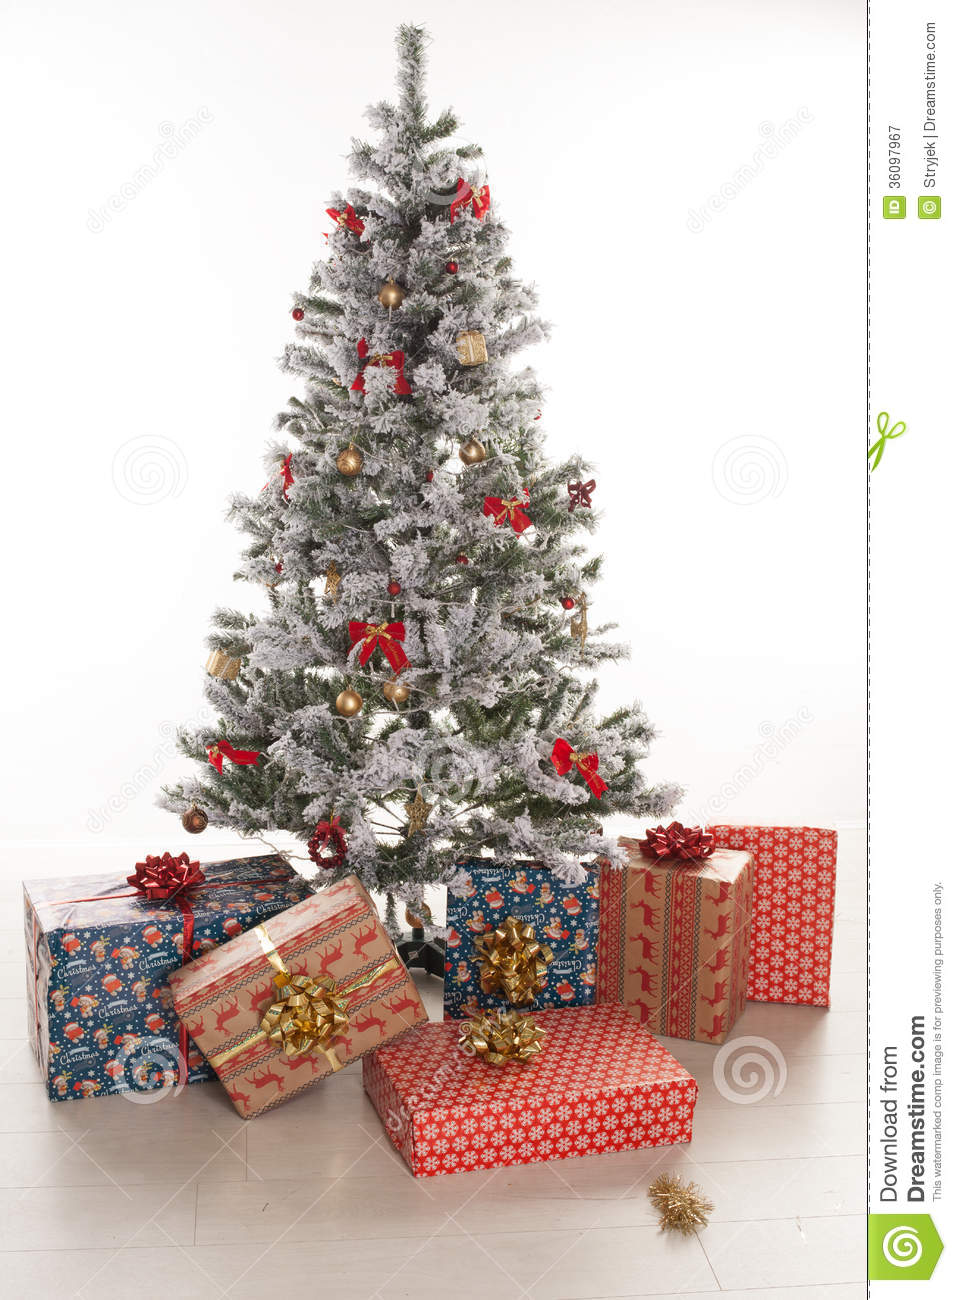 Christmas Tree With Presents Clipart | Clipart Panda ... |Wrapped Christmas Presents Under The Tree